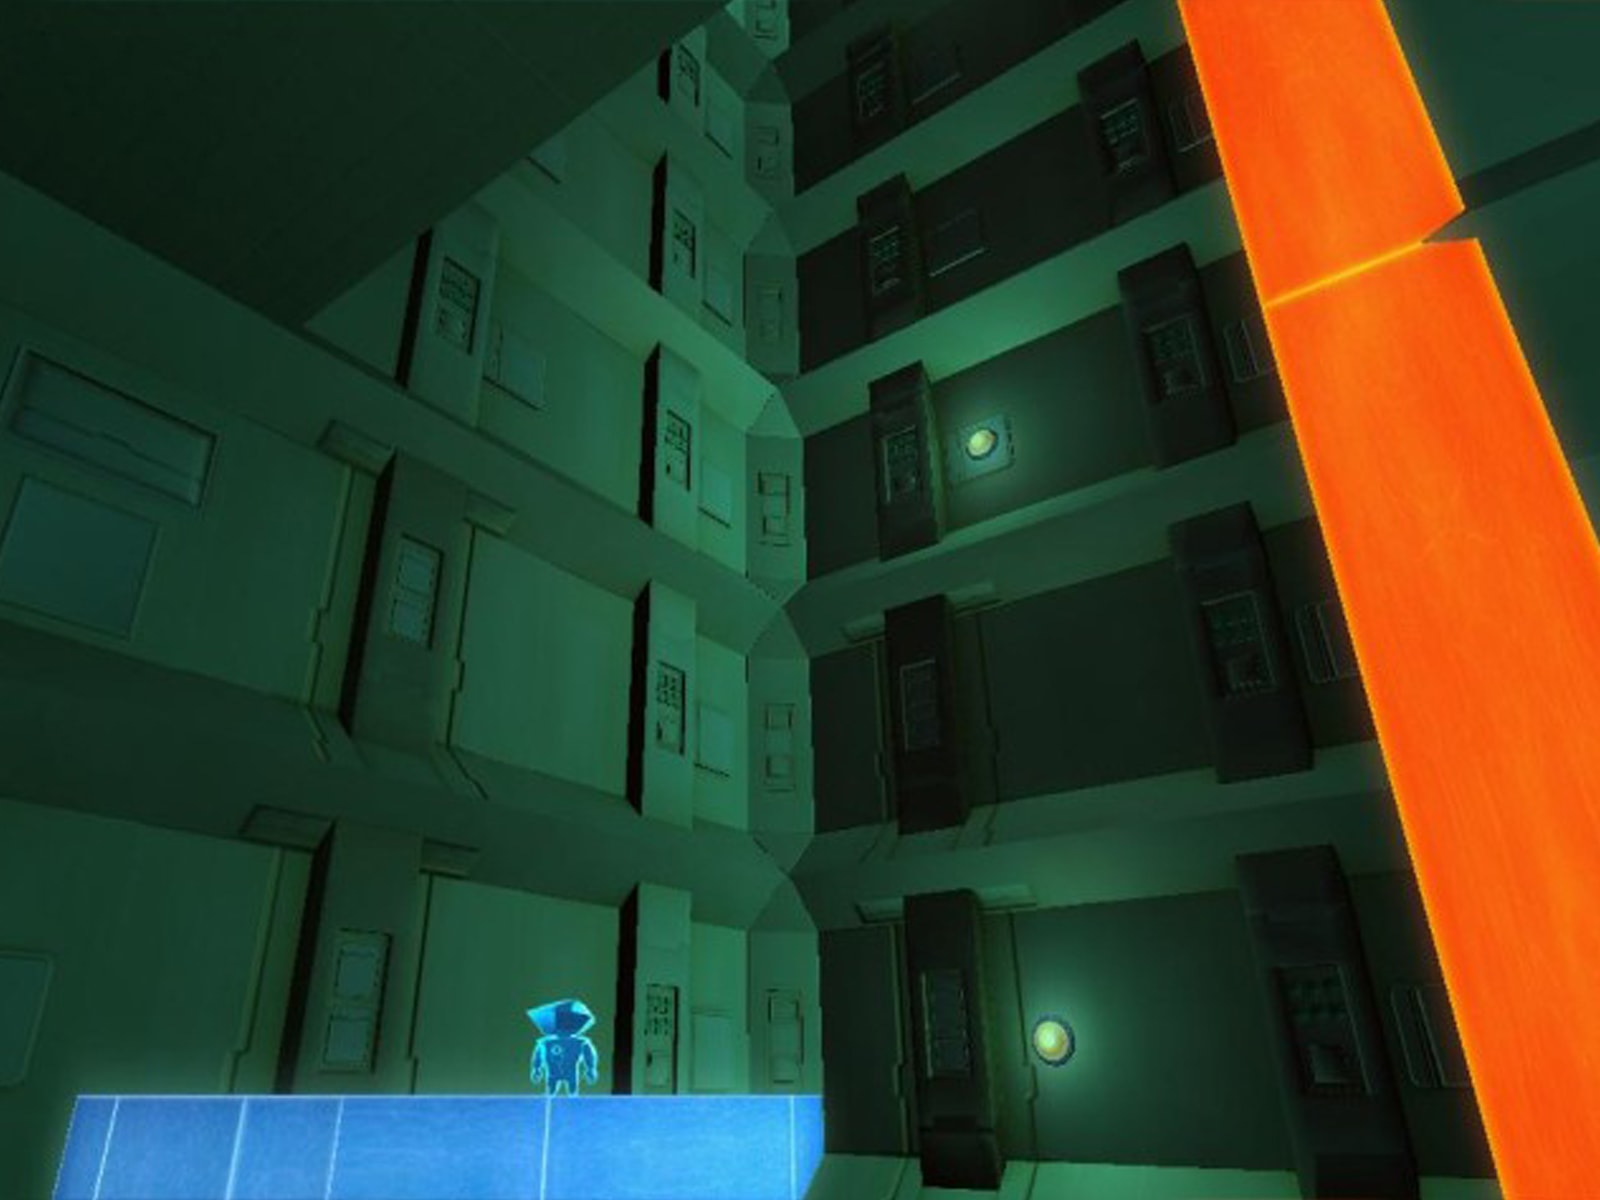 Screenshot from DigiPen student game Perspective of the main character looking up at building walls